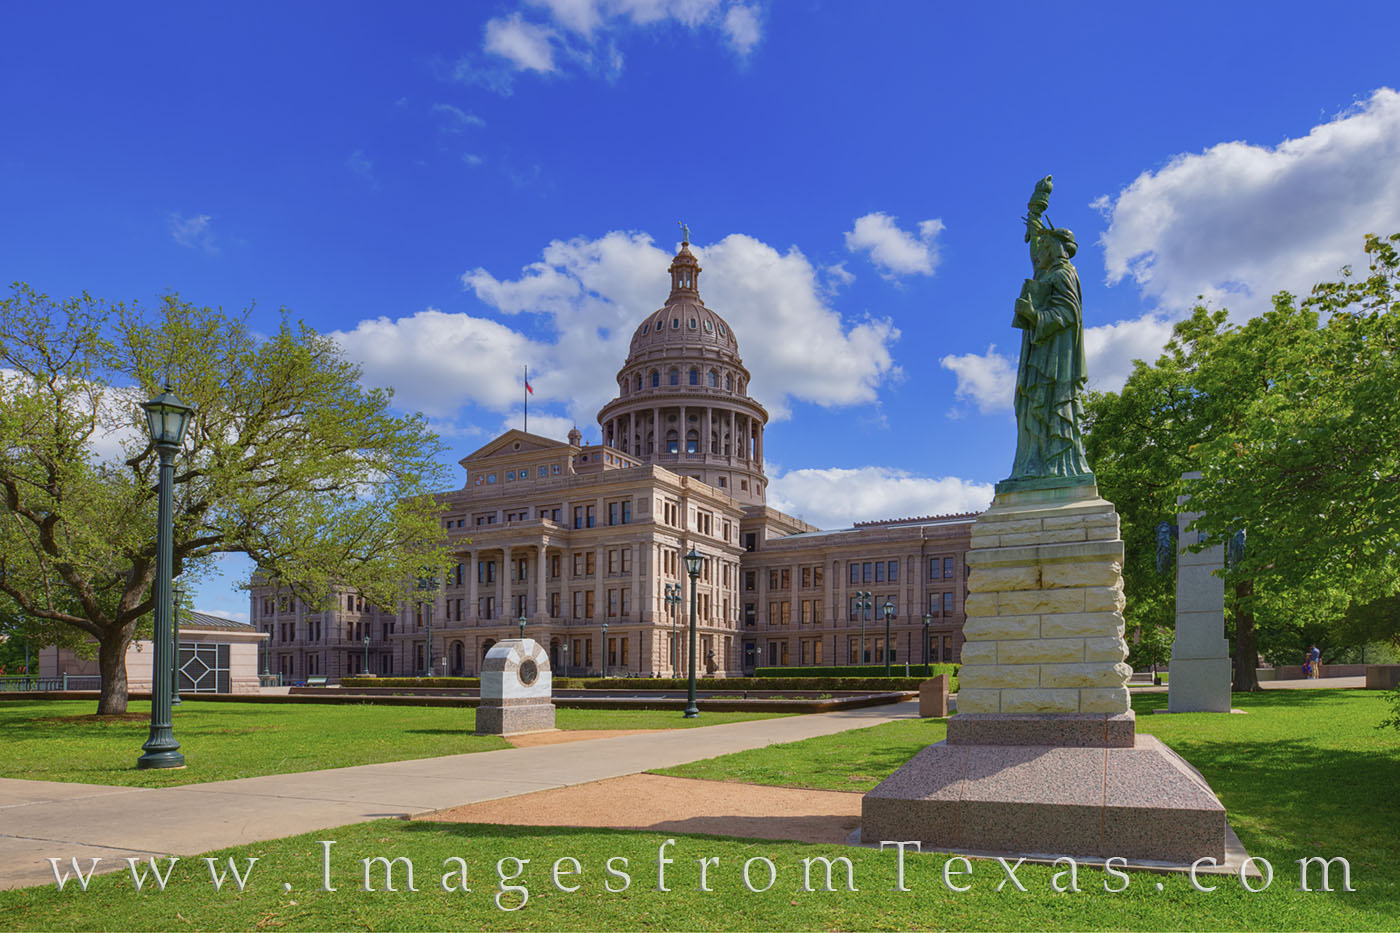 statue of liberty, texas capitol, state capitol, boy scouts, austin, memorial, monument, photo